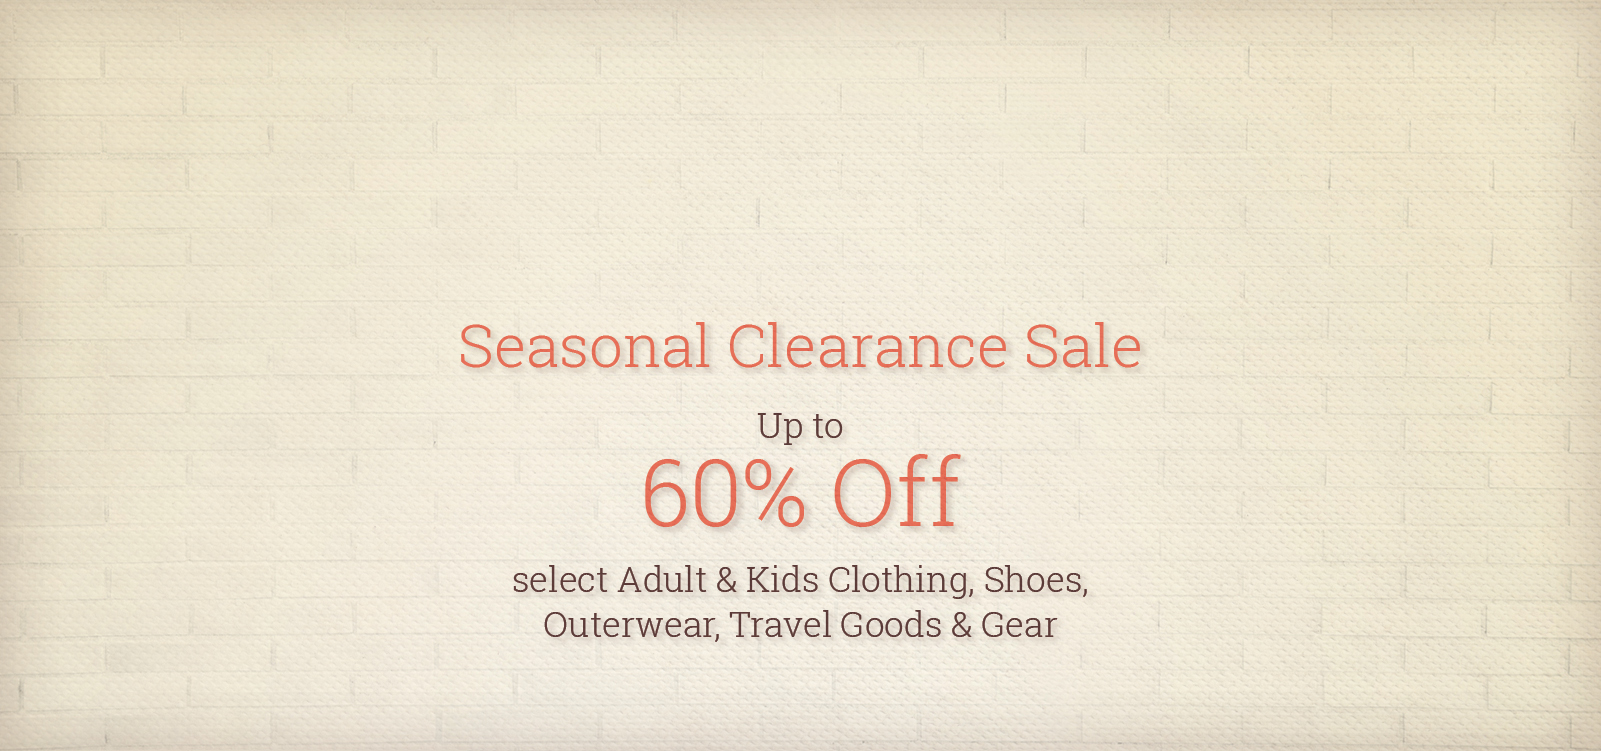 Seasonal Clearance Sale